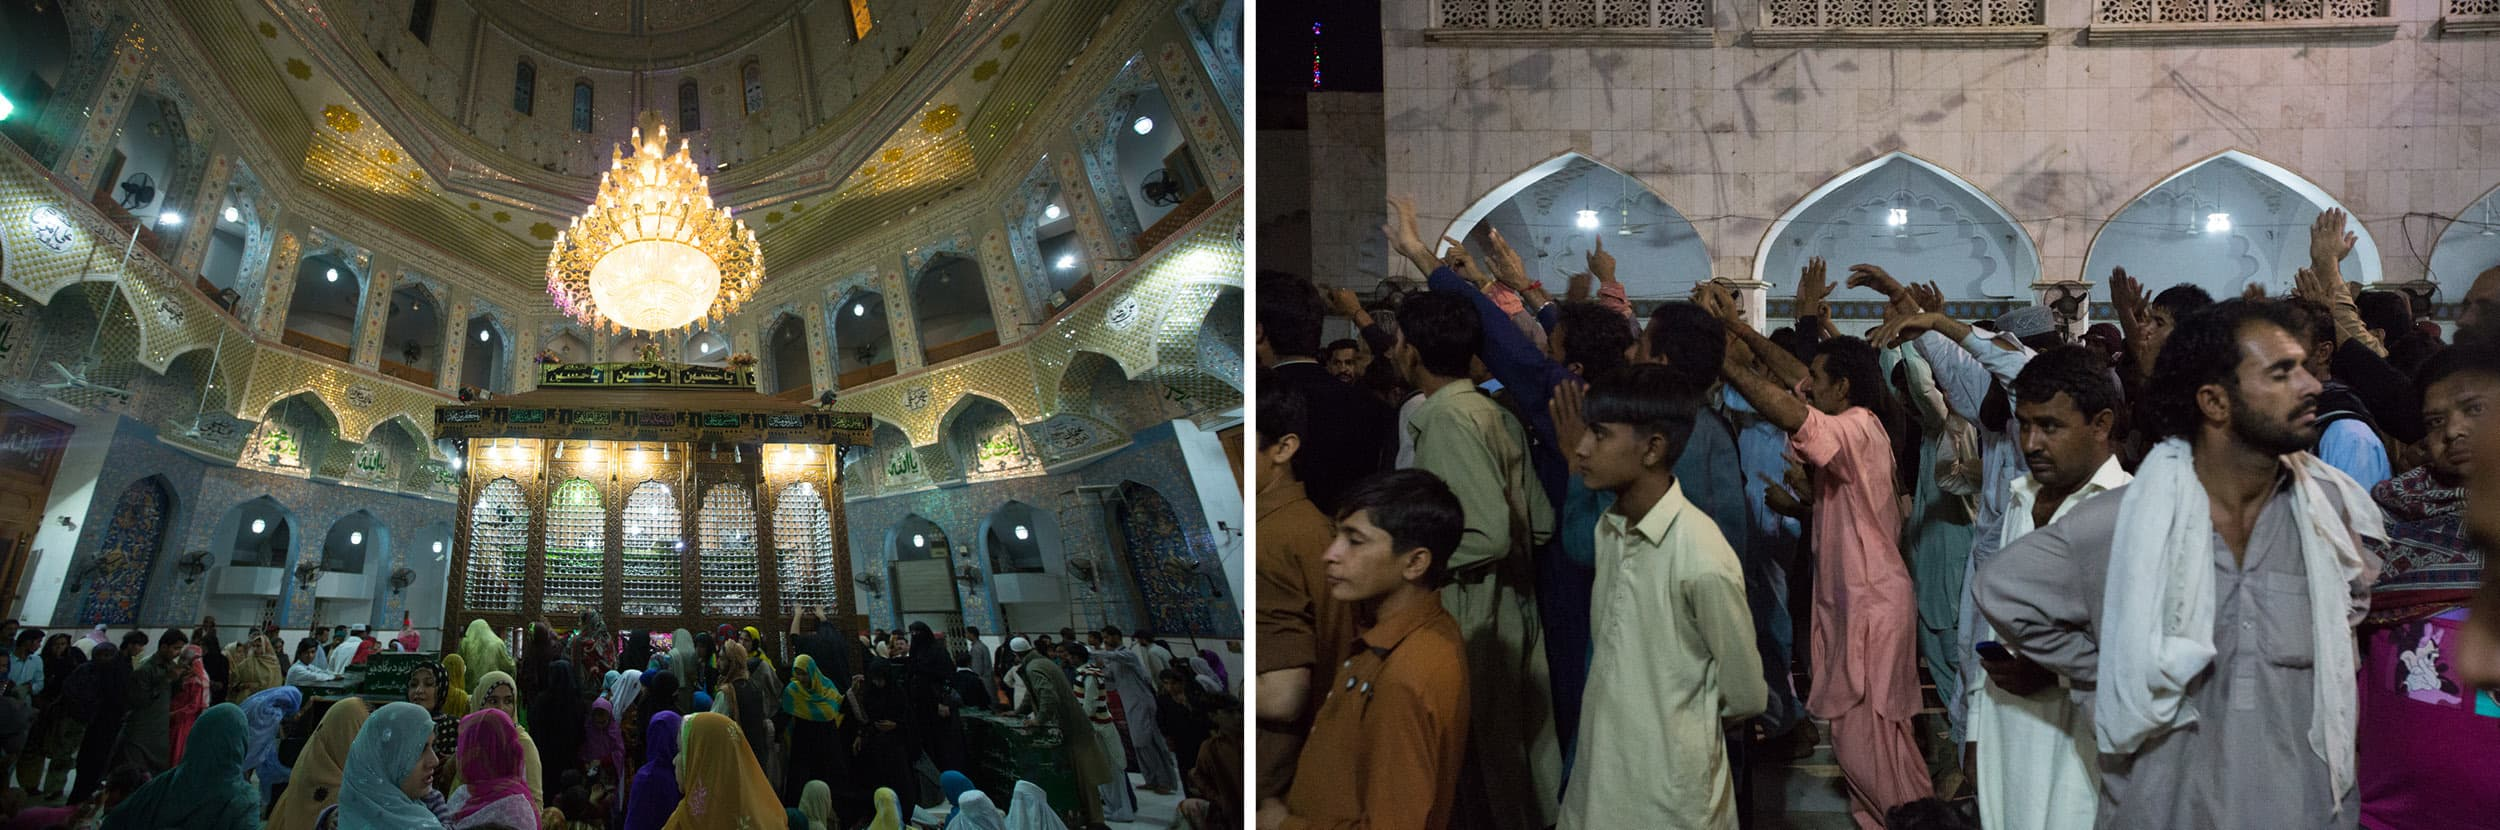 (Left) A crowd gathers around the sarcophagus of Lal Shahbaz Qalandar; (Right) Men react to *dhamaal* at Lal Shahbaz Qalandar's shrine